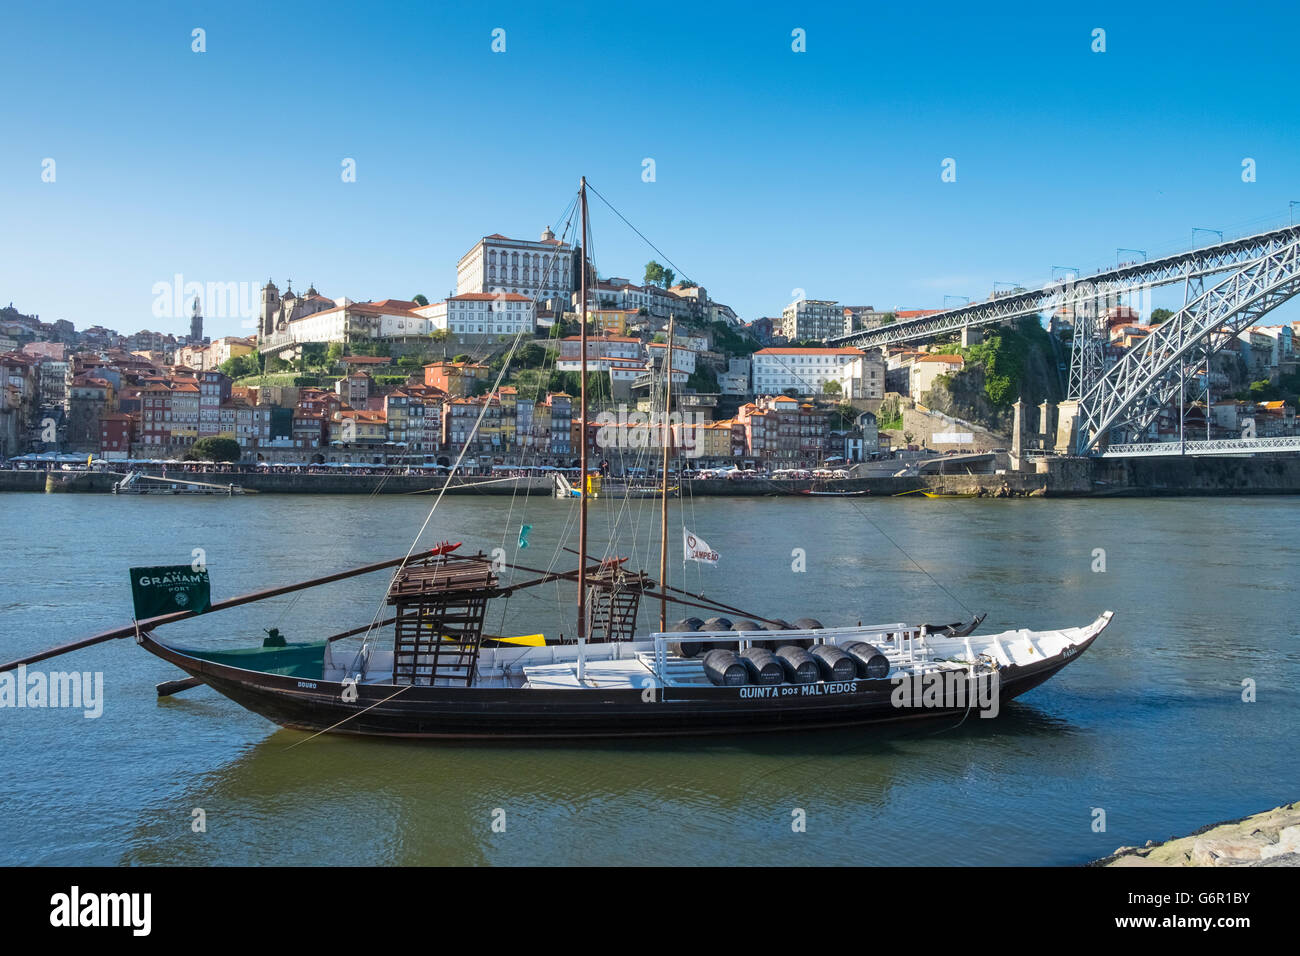 A traditional Rabelo boat, used for transportation of port wine, Porto, Portugal Stock Photo